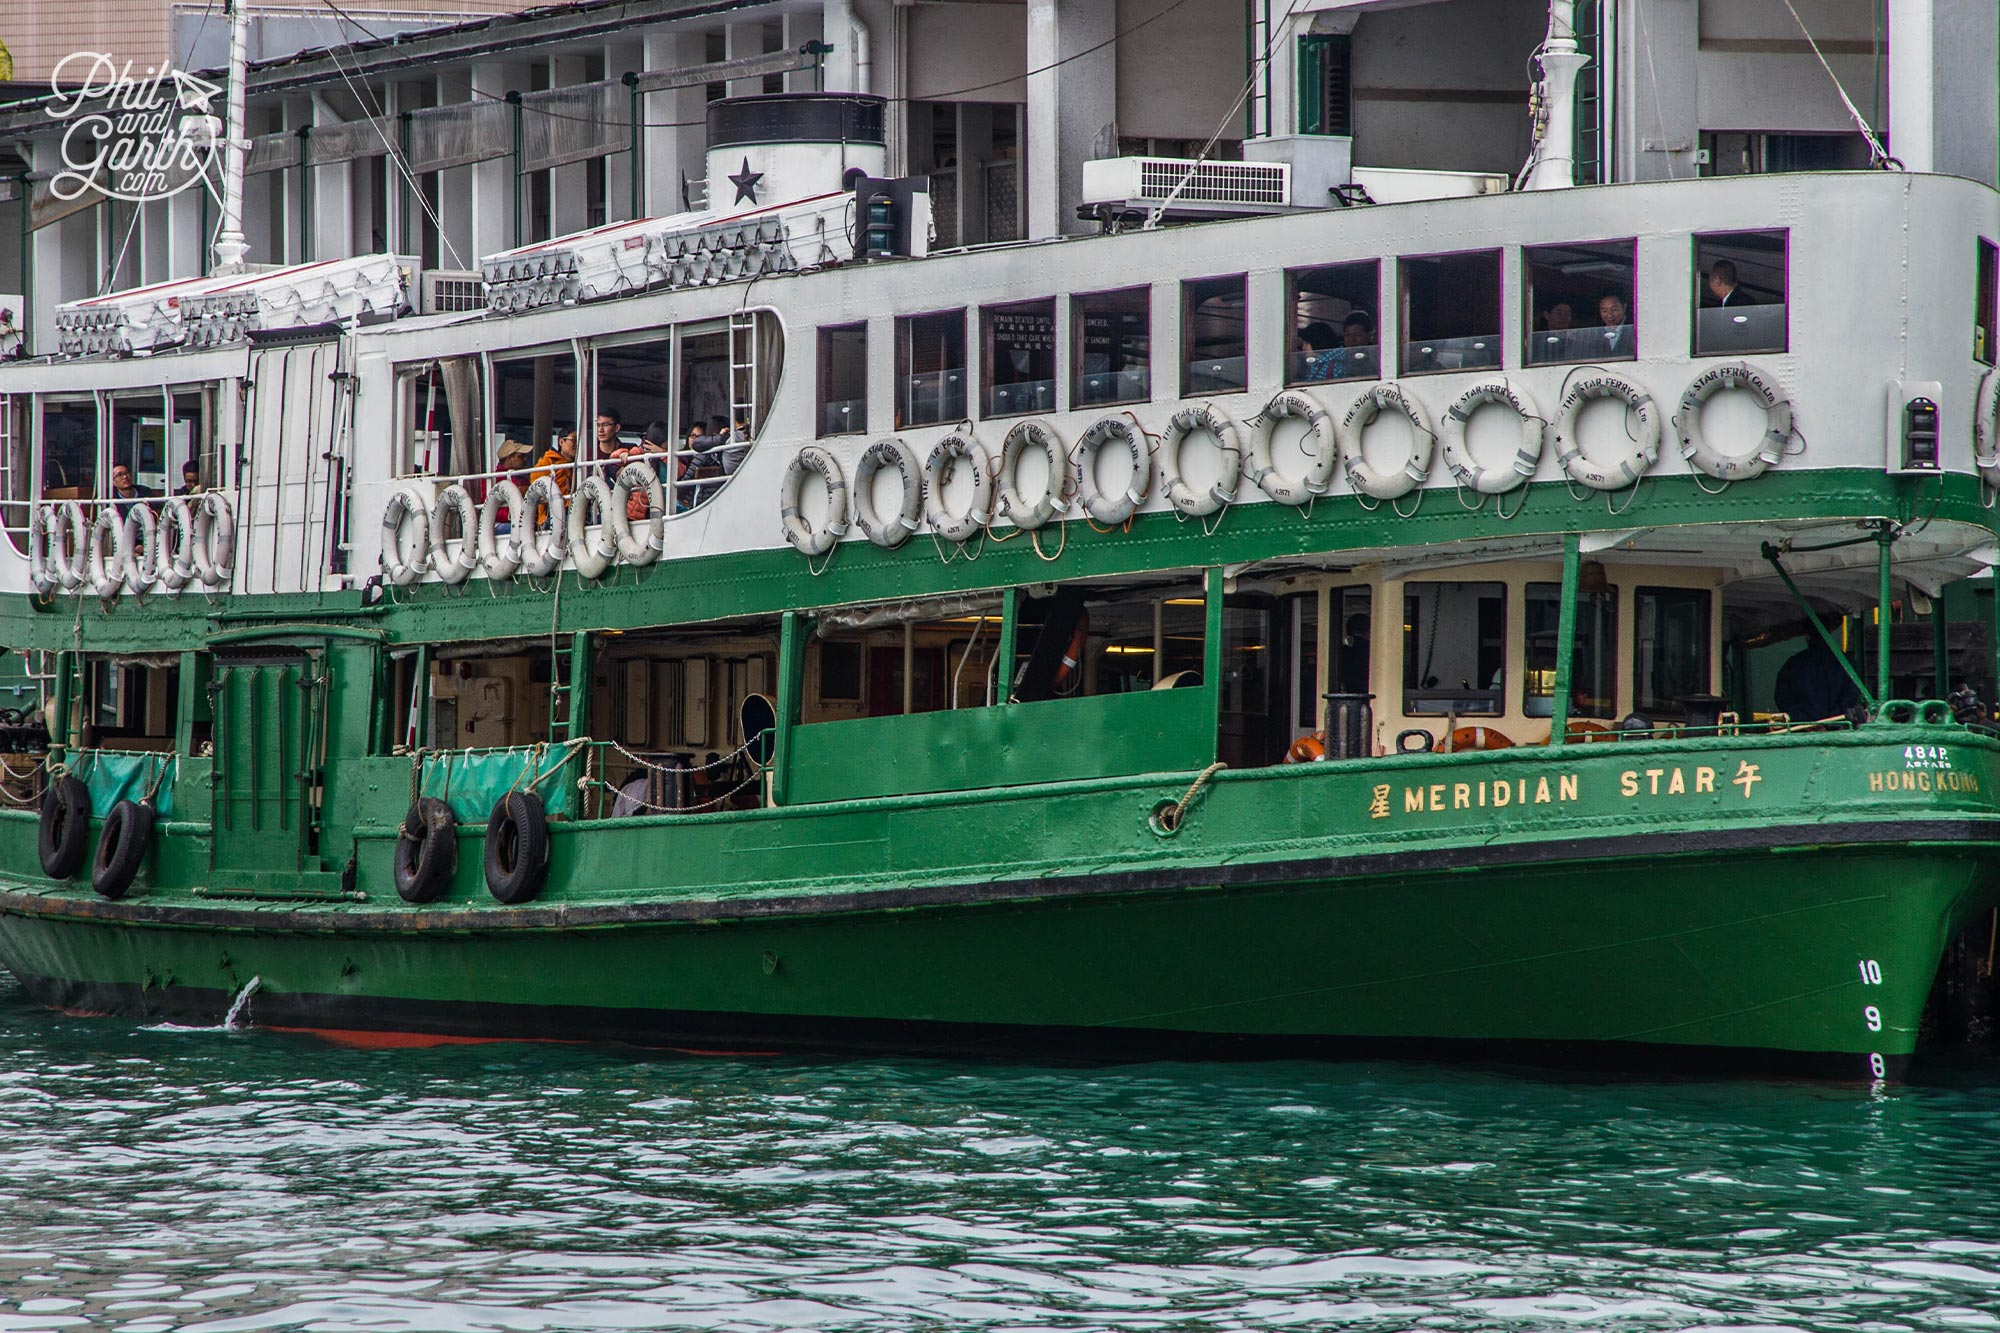 The Meridian Star ferry